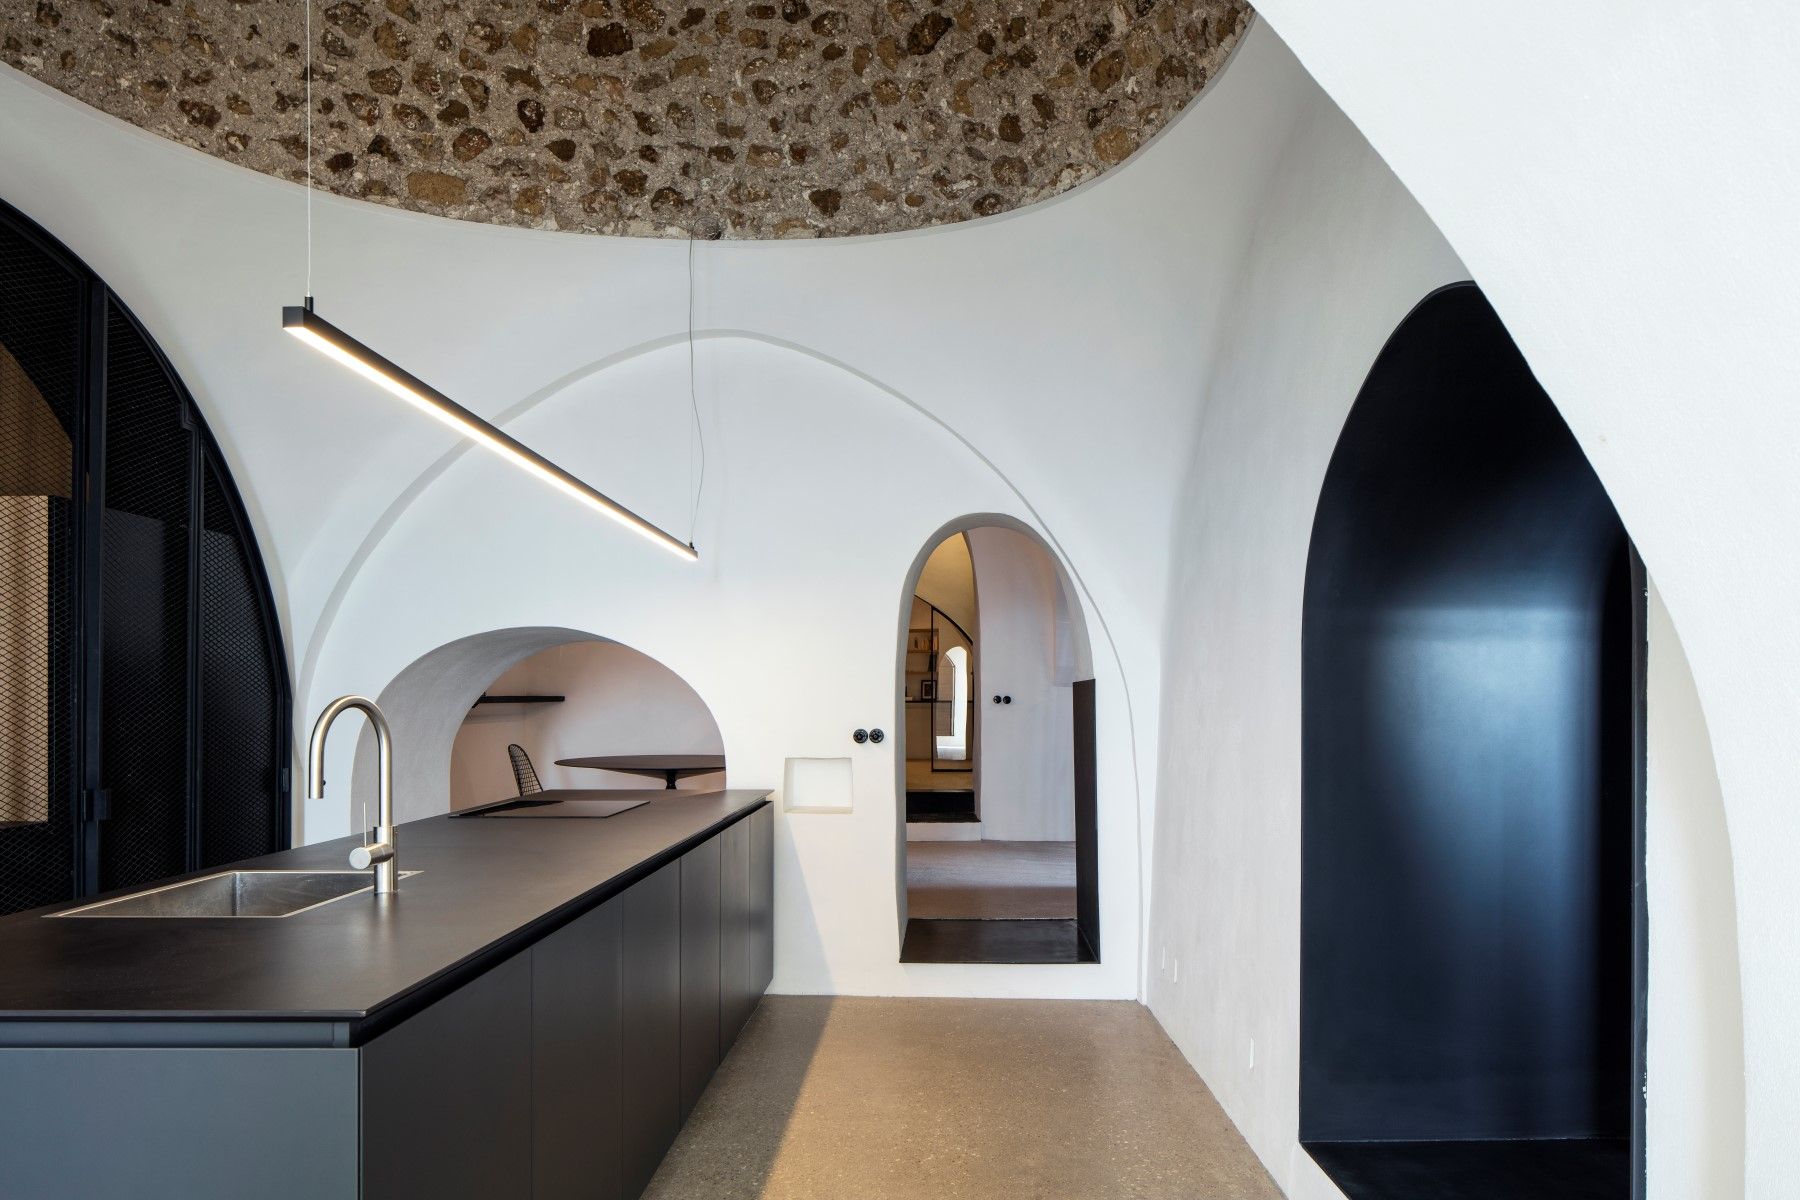 In A Brilliant Design Move The Kitchens Massive Stone Dome Was Left Un Plastered Adding Historic Statement Amid Minimalist White Interior